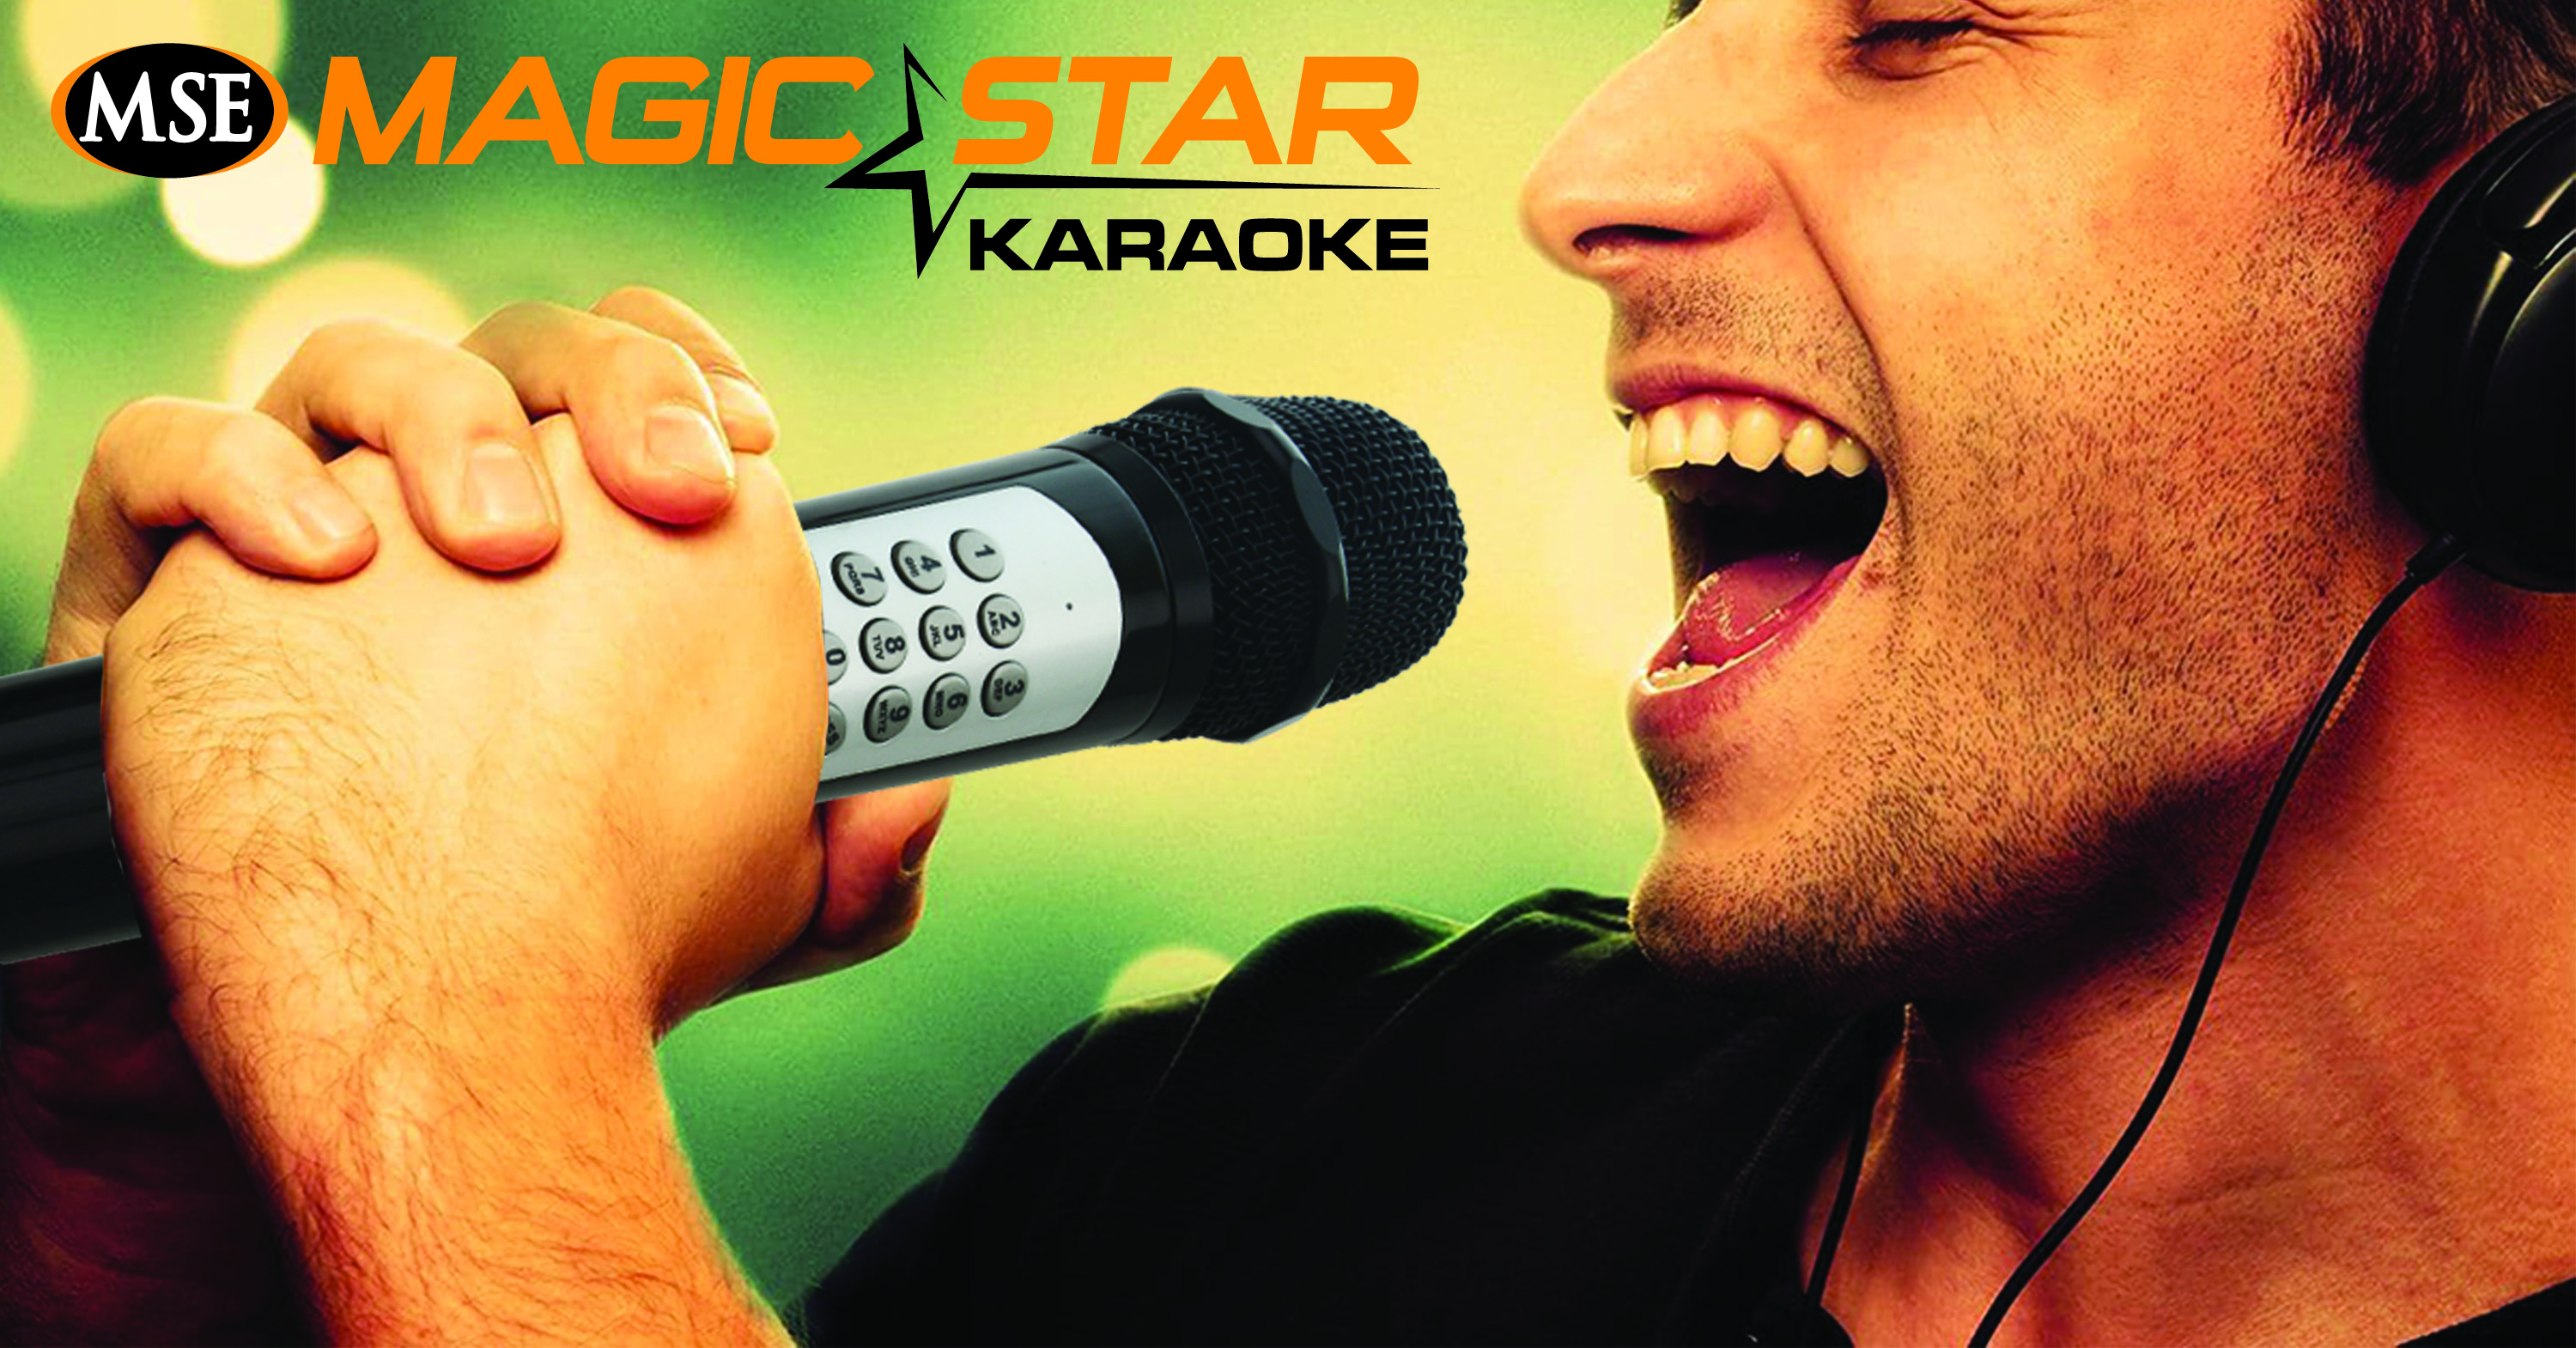 MS805 PRO KARAOKE ANYWHERE!